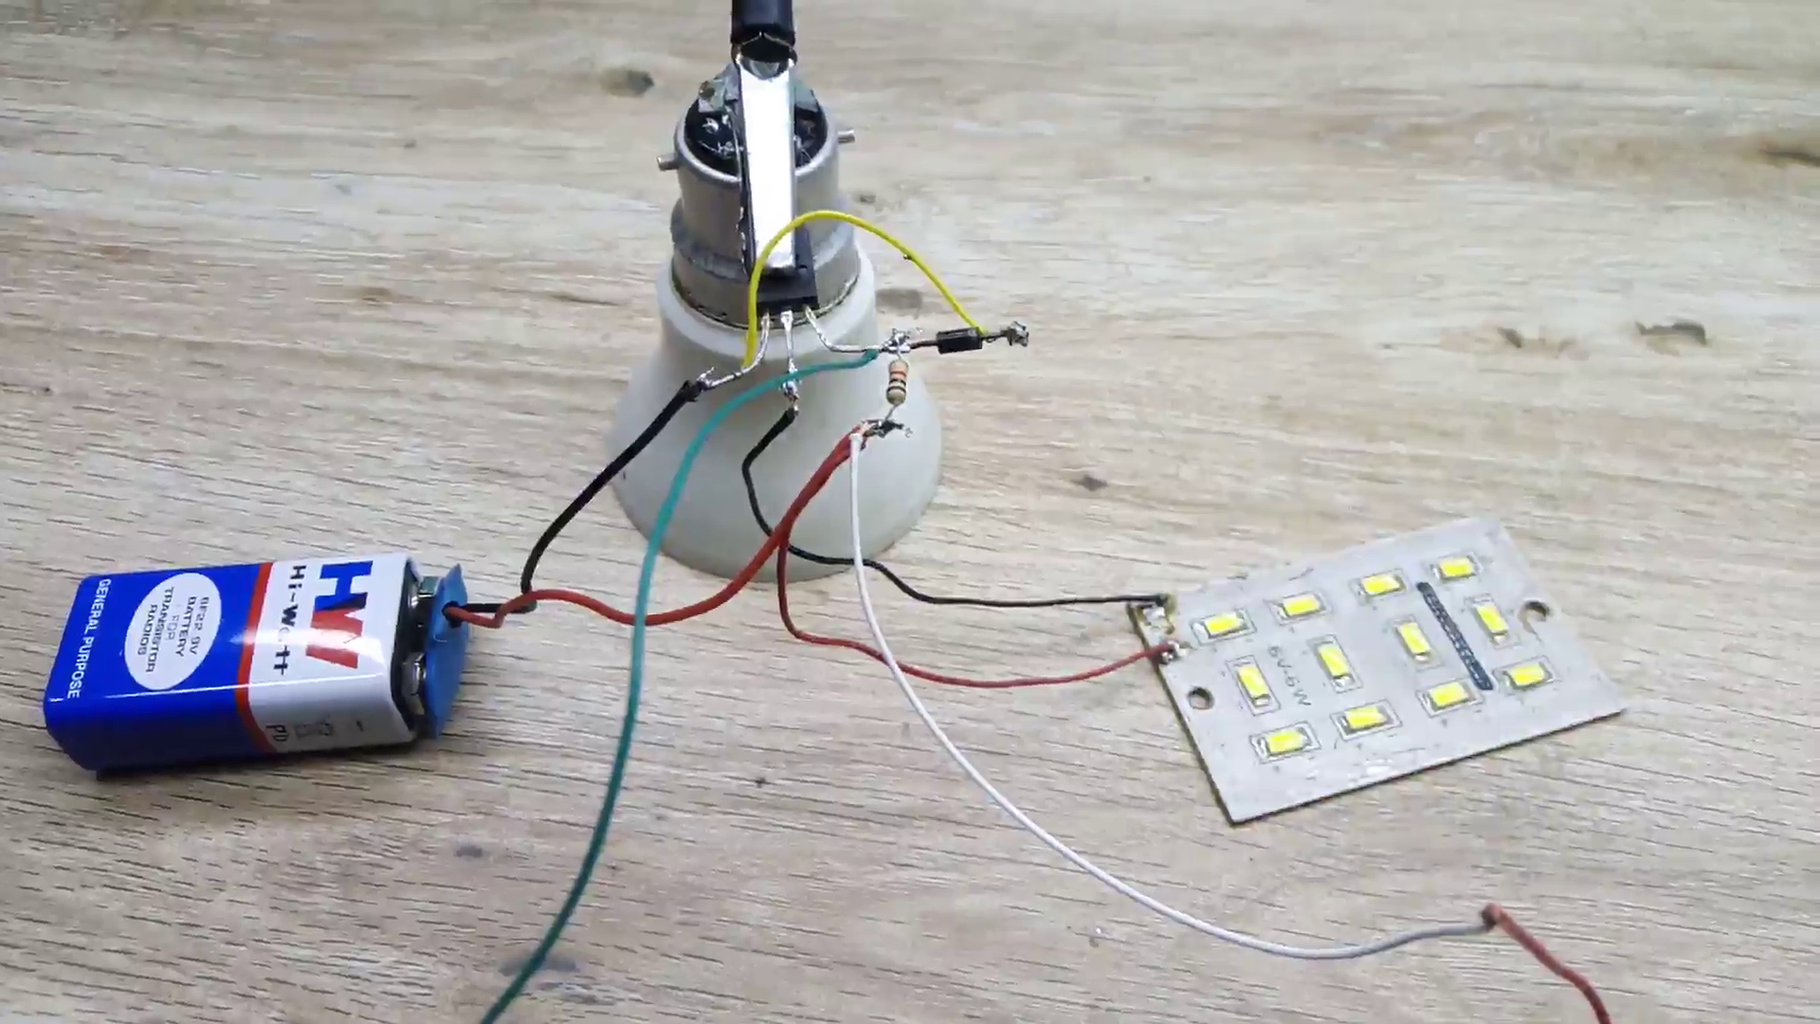 HOW TO MAKE a CIRCUIT OF AUTOMATIC EMERGENCY LIGHT